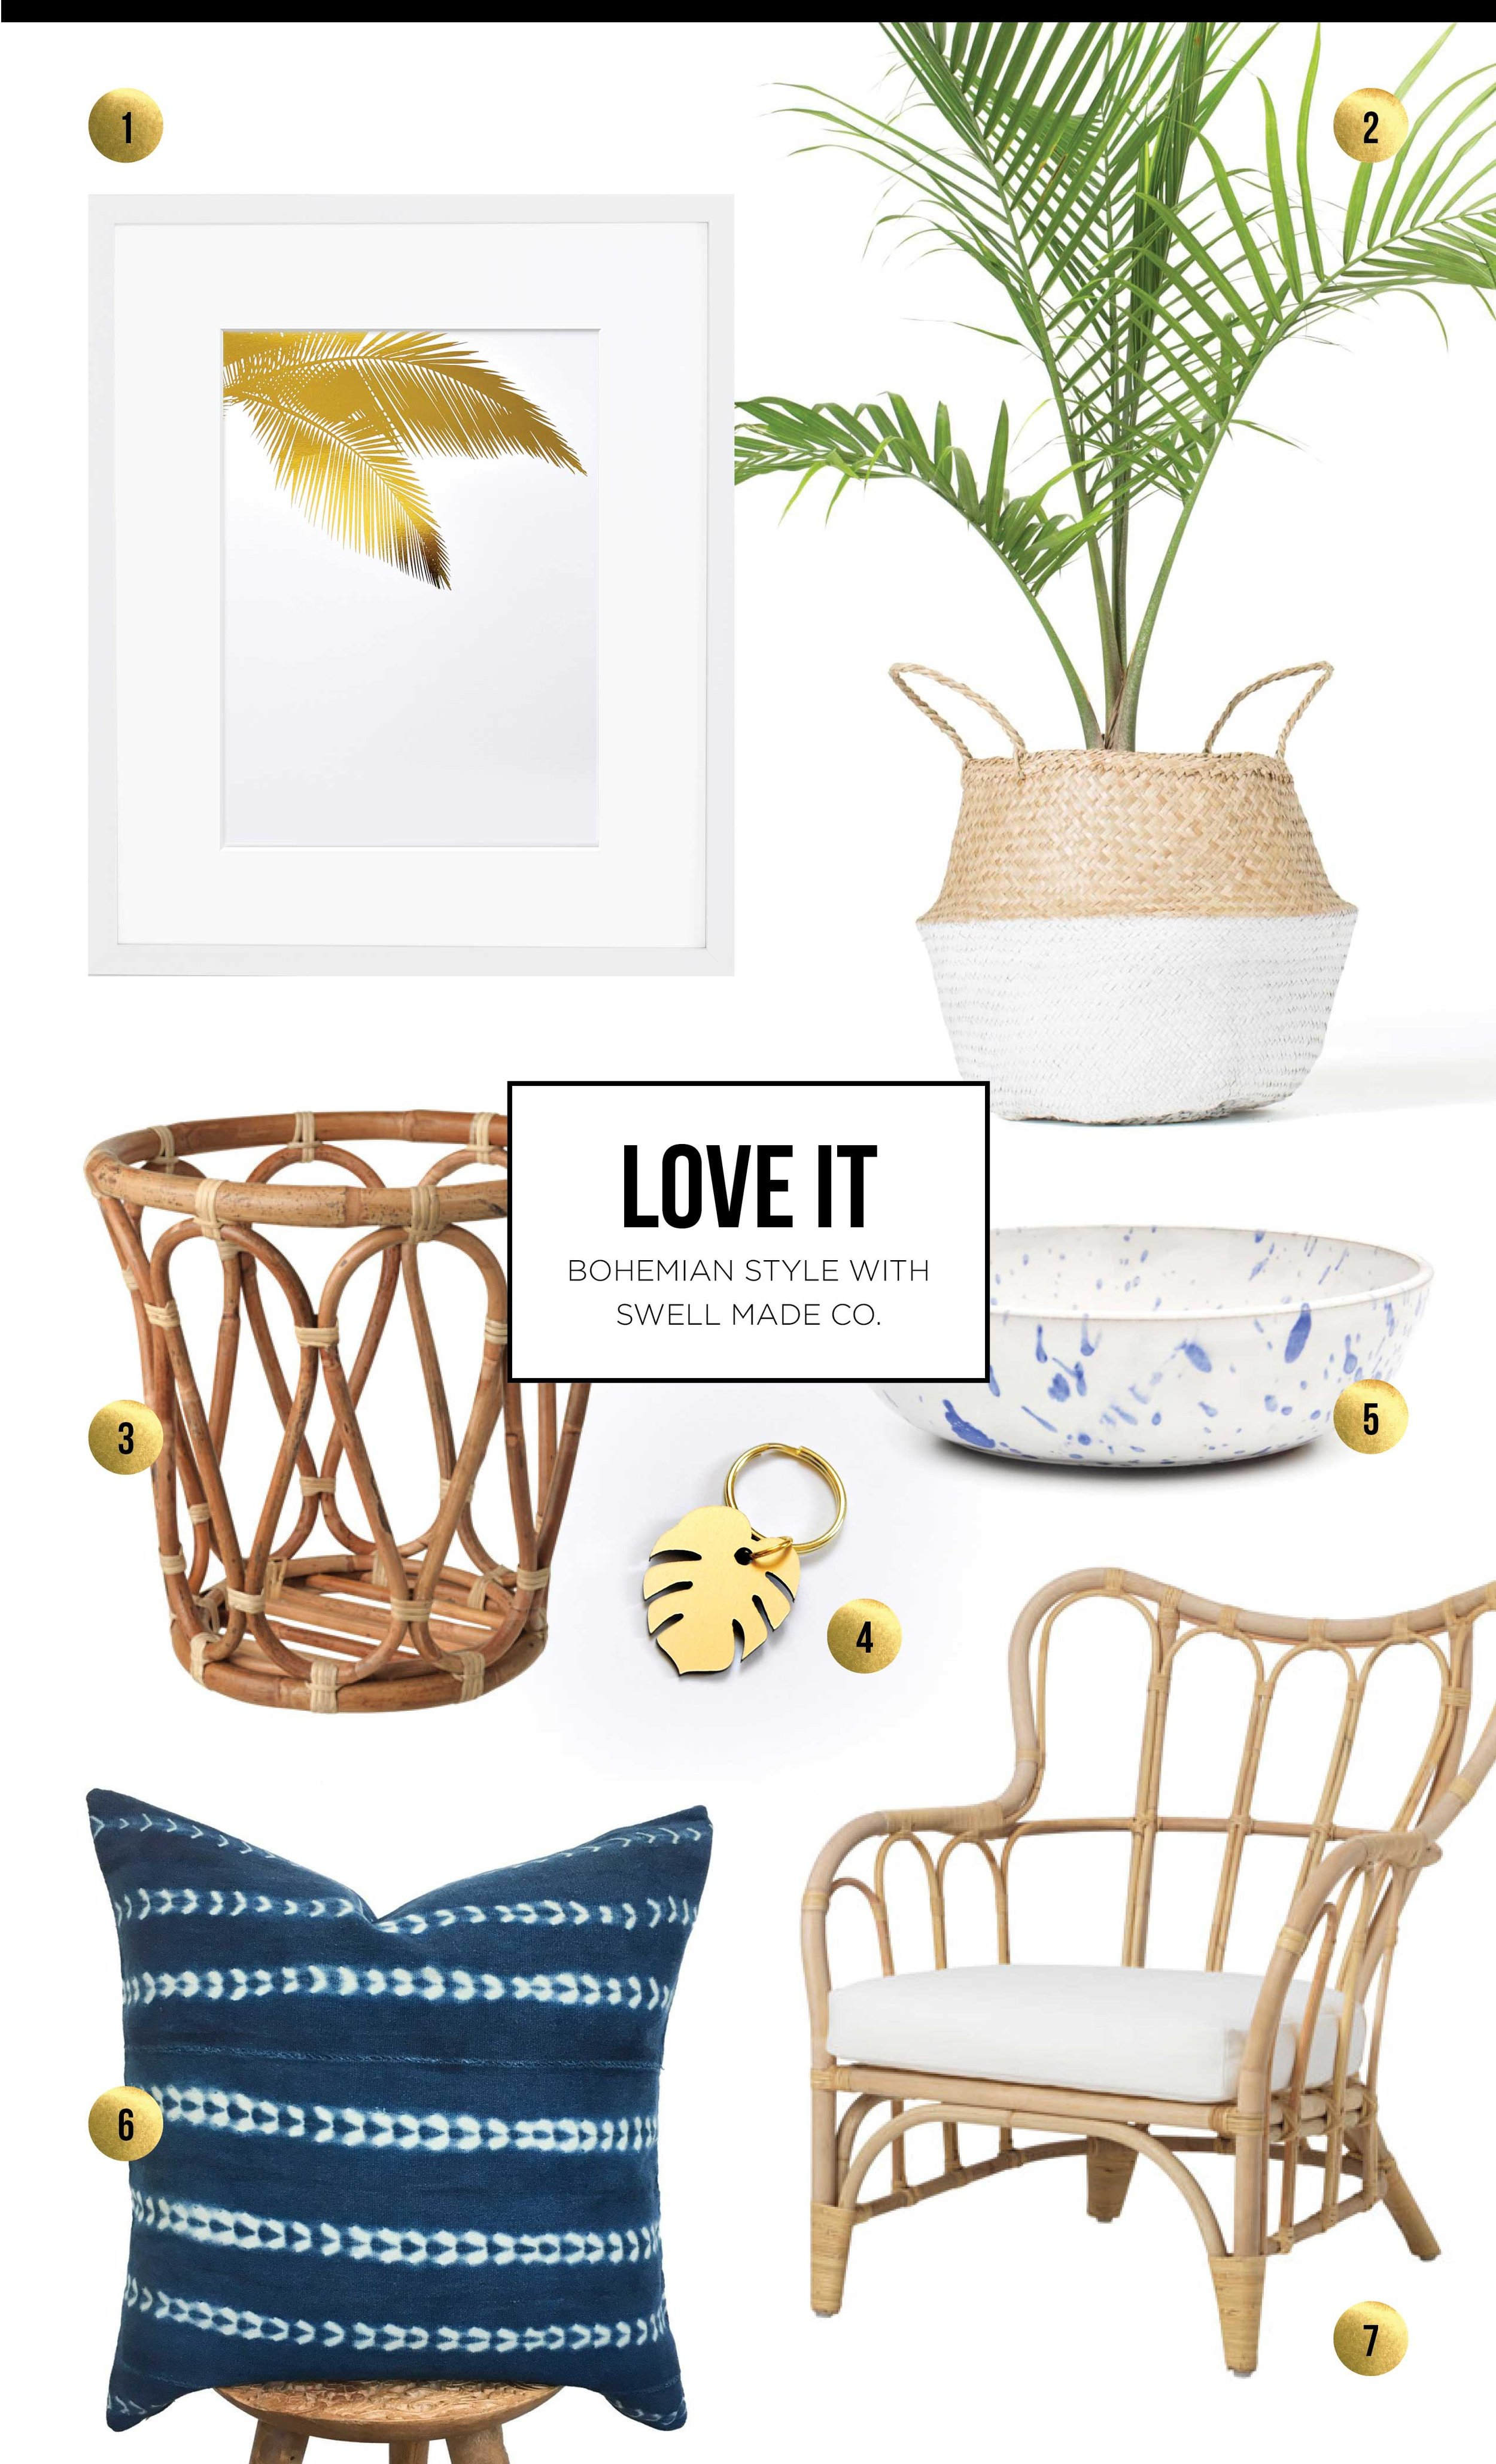 LOVE IT - Bohemian Style with Swell Made Co.